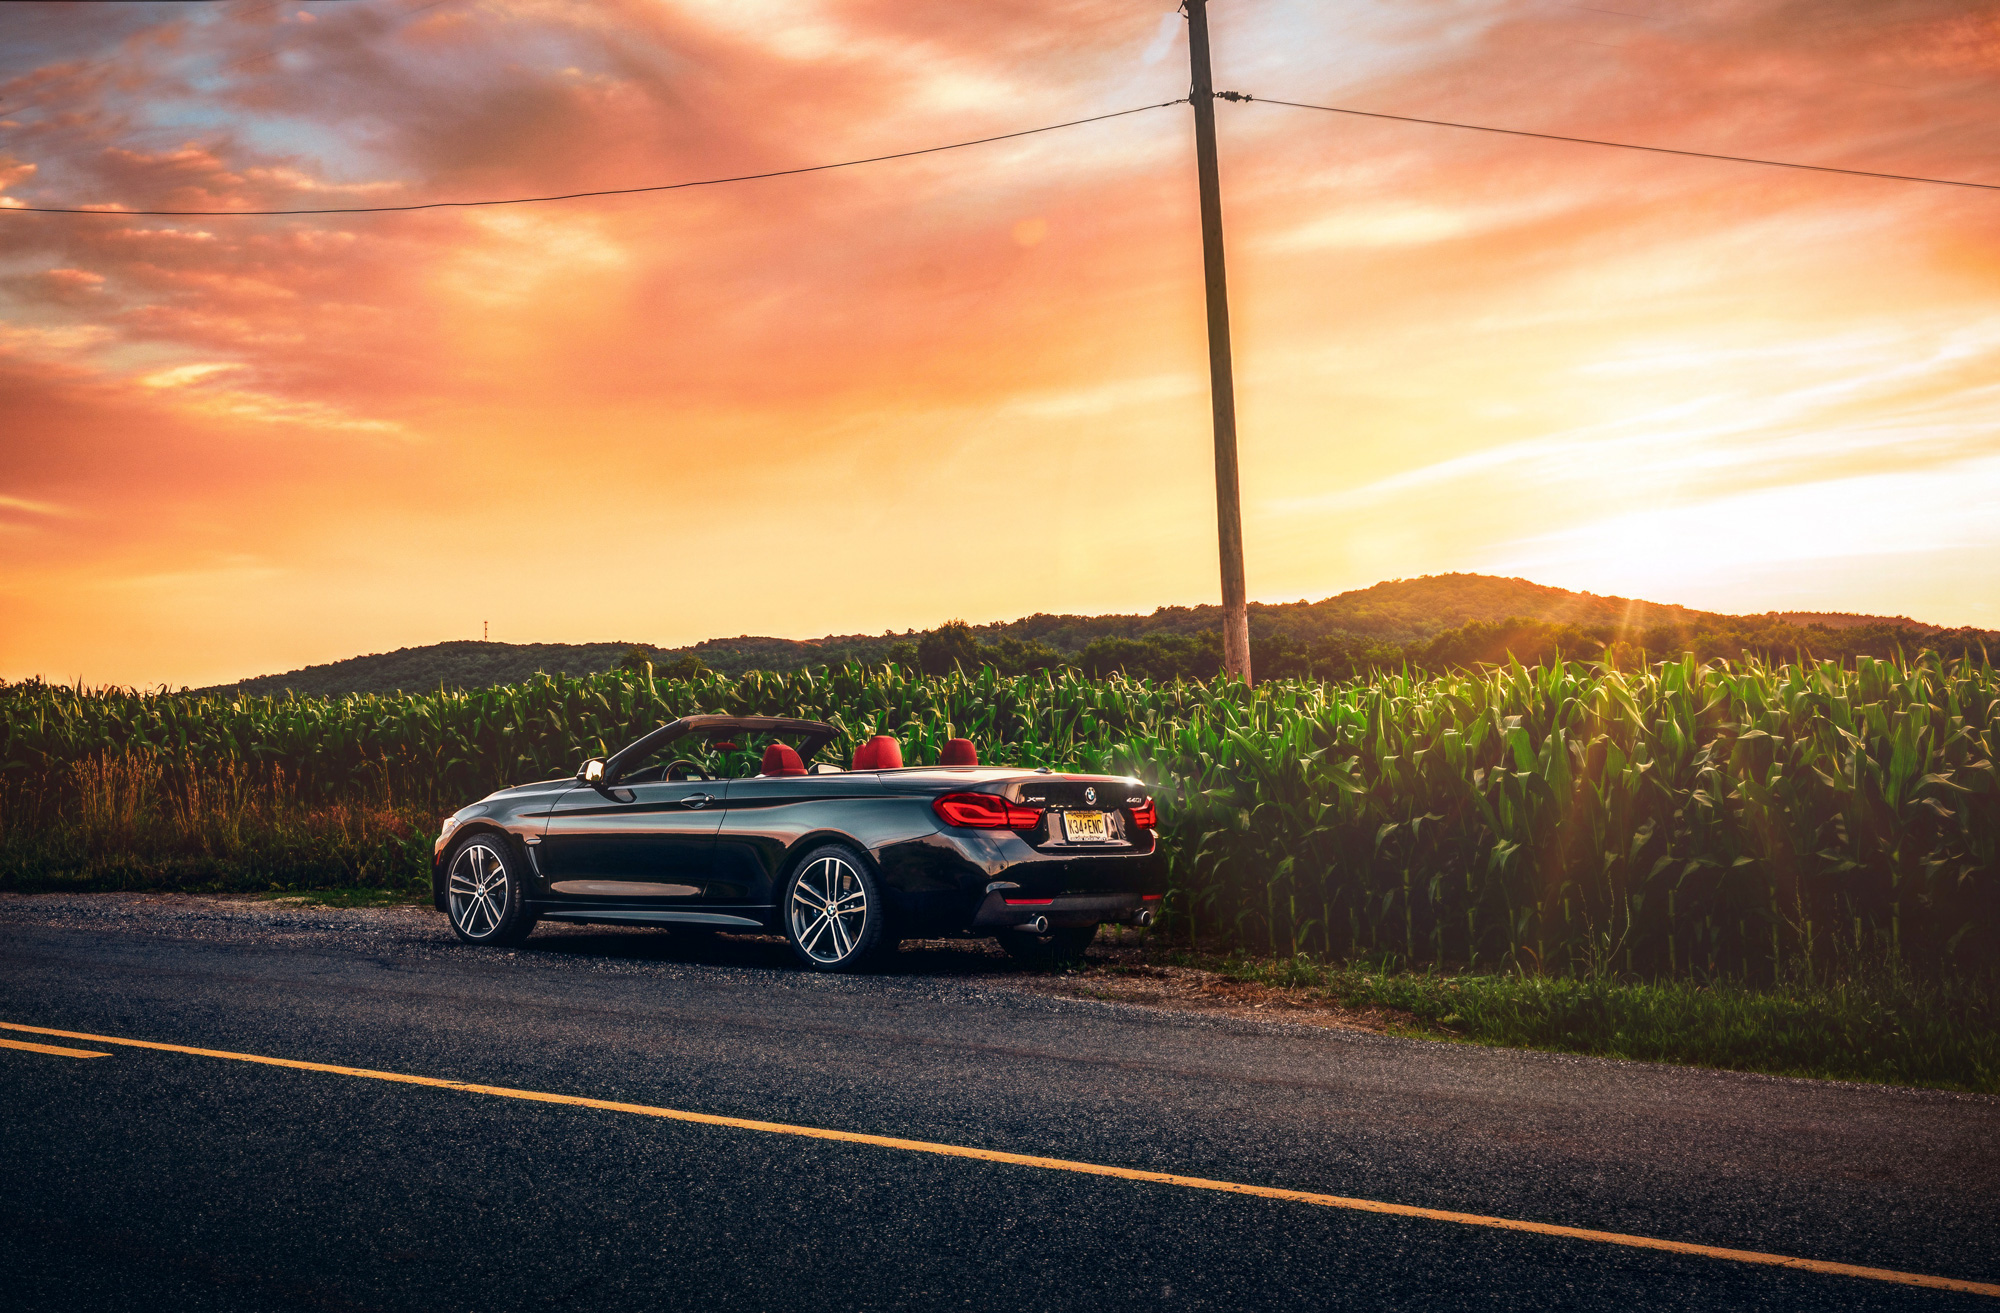 BMW 440i Convertible at sunset